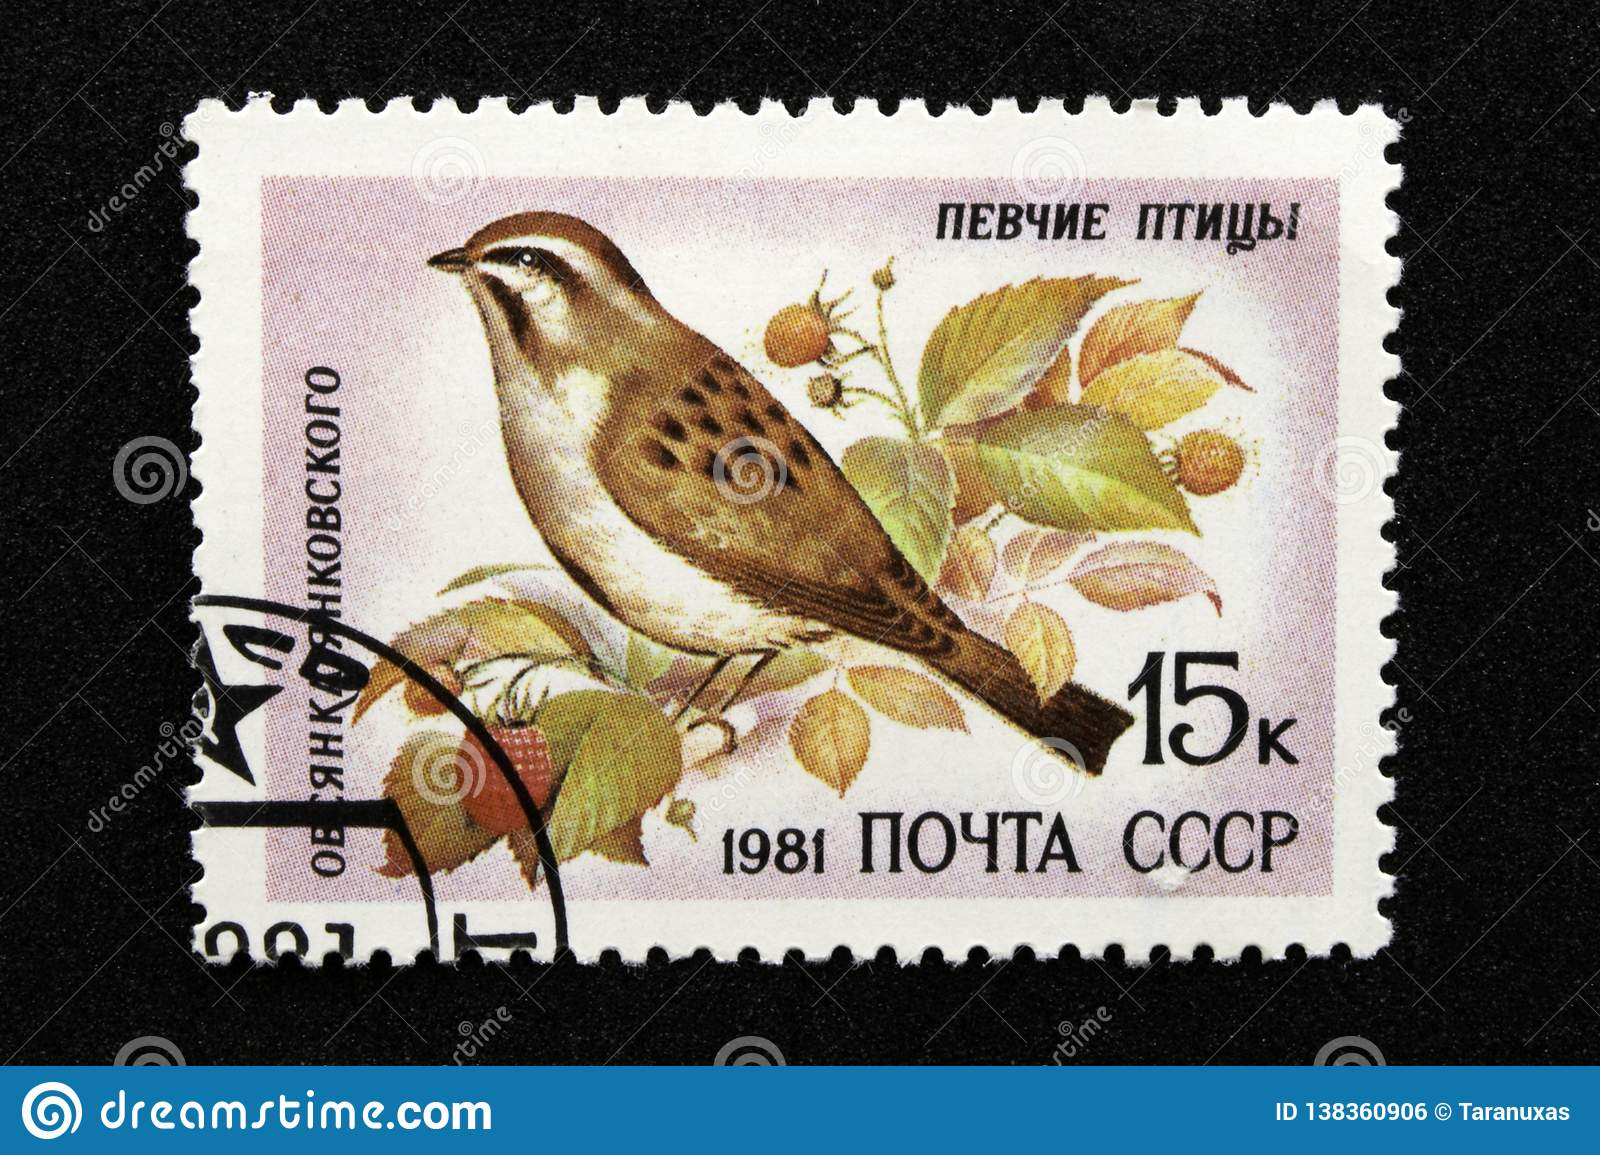 The USSR postage stamp, series - Songbirds, 1981